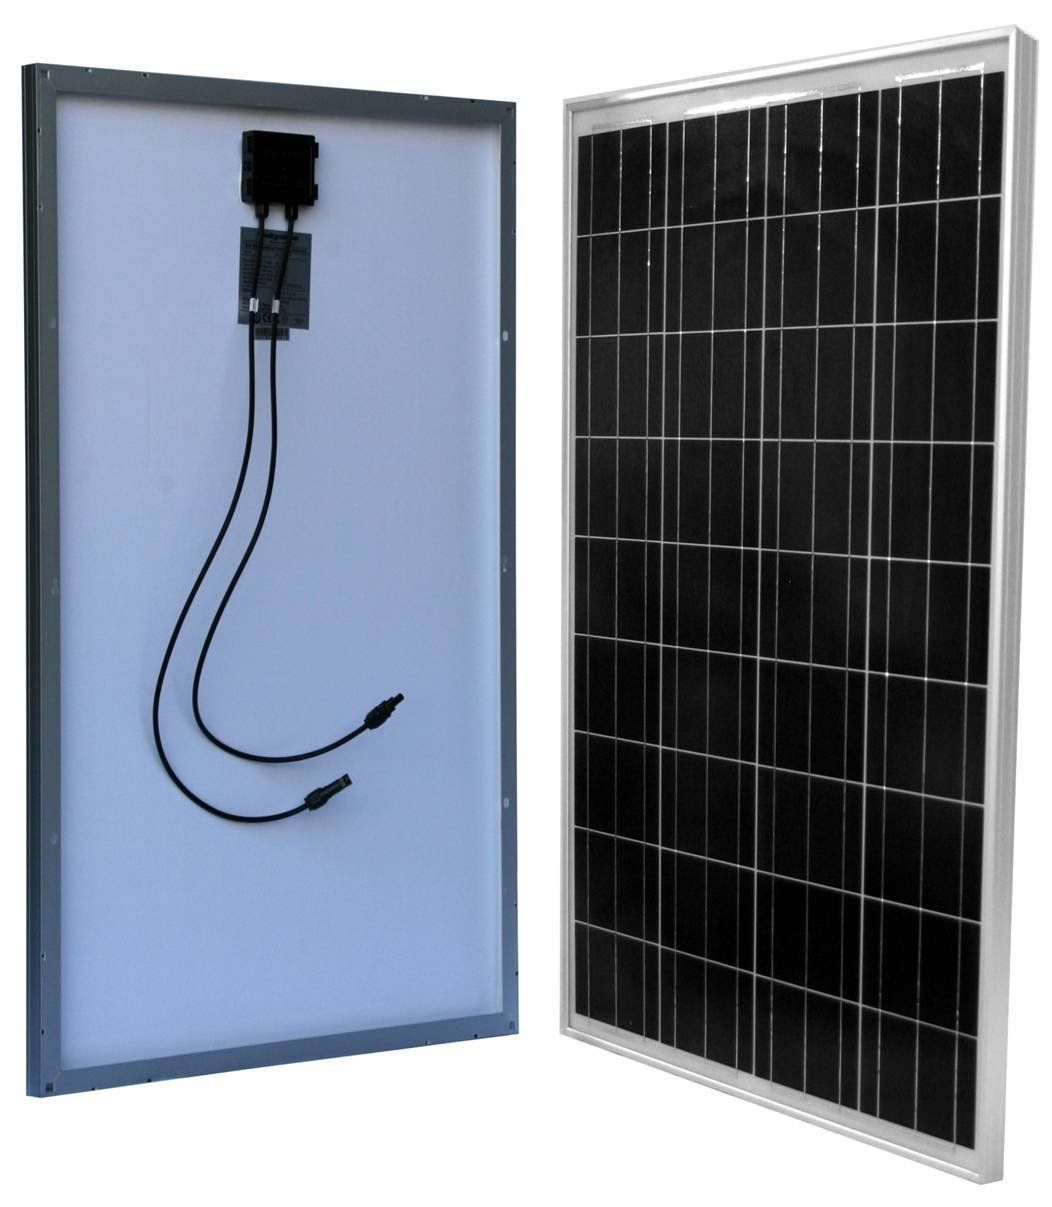 Windynation 100 Watt 100w Solar Panel For 12 Volt Battery Charging Rv Boat Off Grid Solar Panels Solar Energy Panels Best Solar Panels